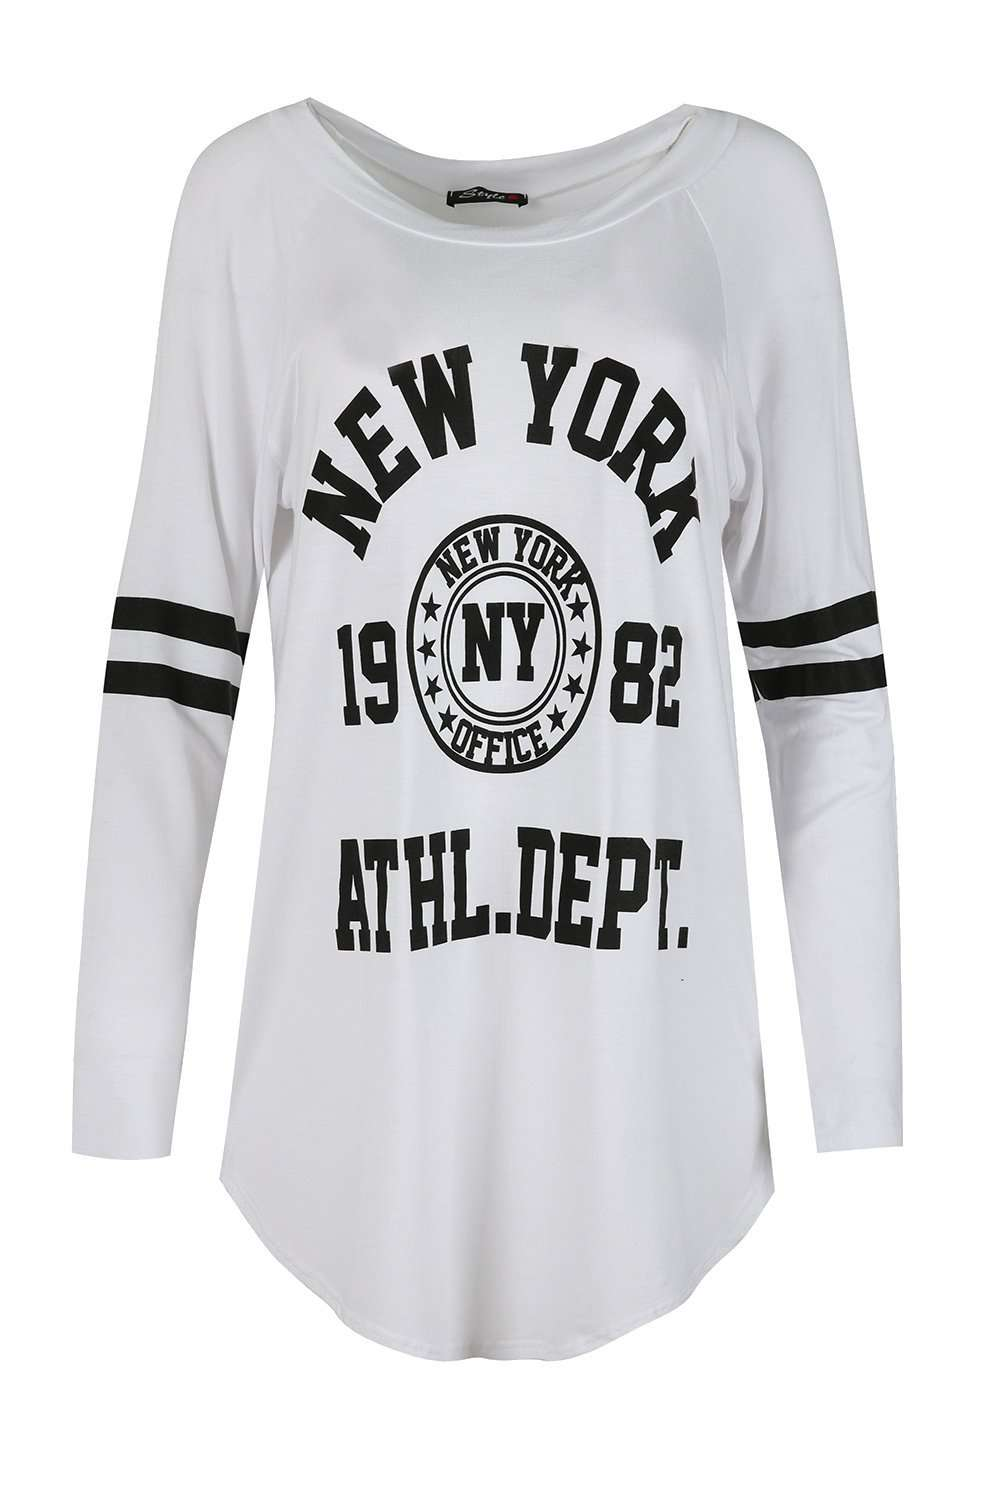 Maria Long Sleeve New York Slogan Tshirt Dress - bejealous-com